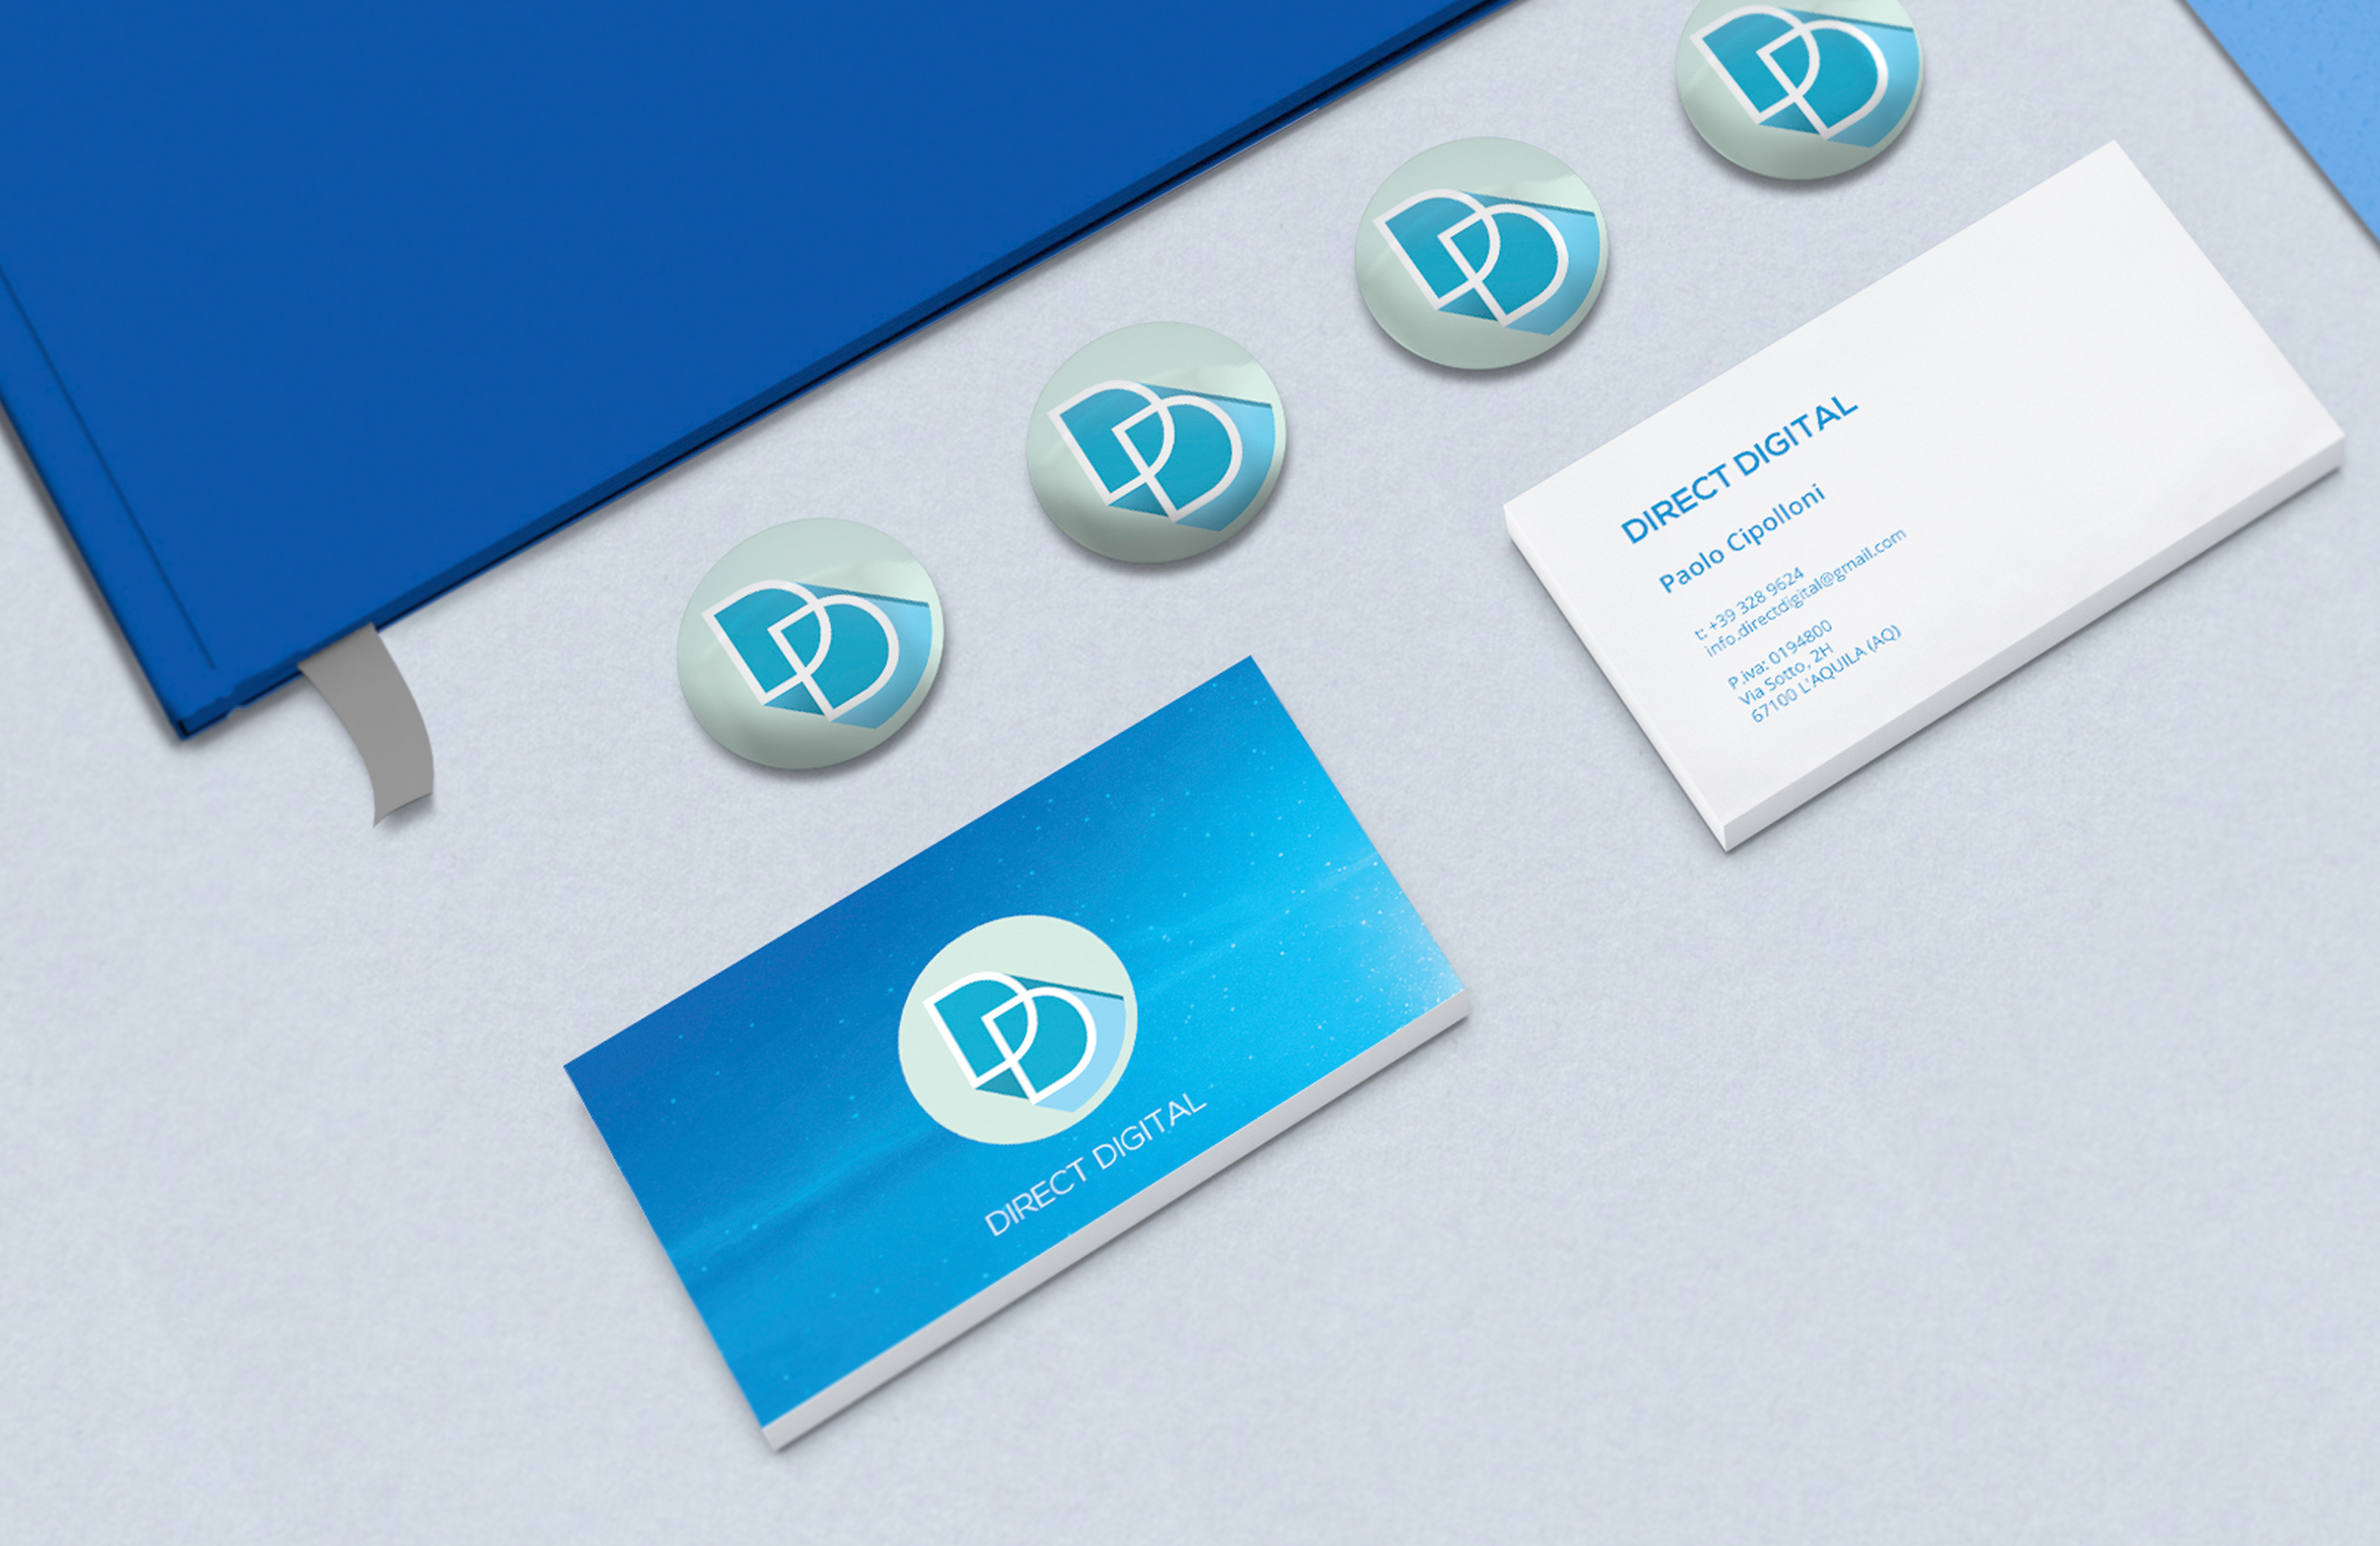 GEMINIWEB - IMAGE - STATIONERY - DIRECT DIGITAL 3